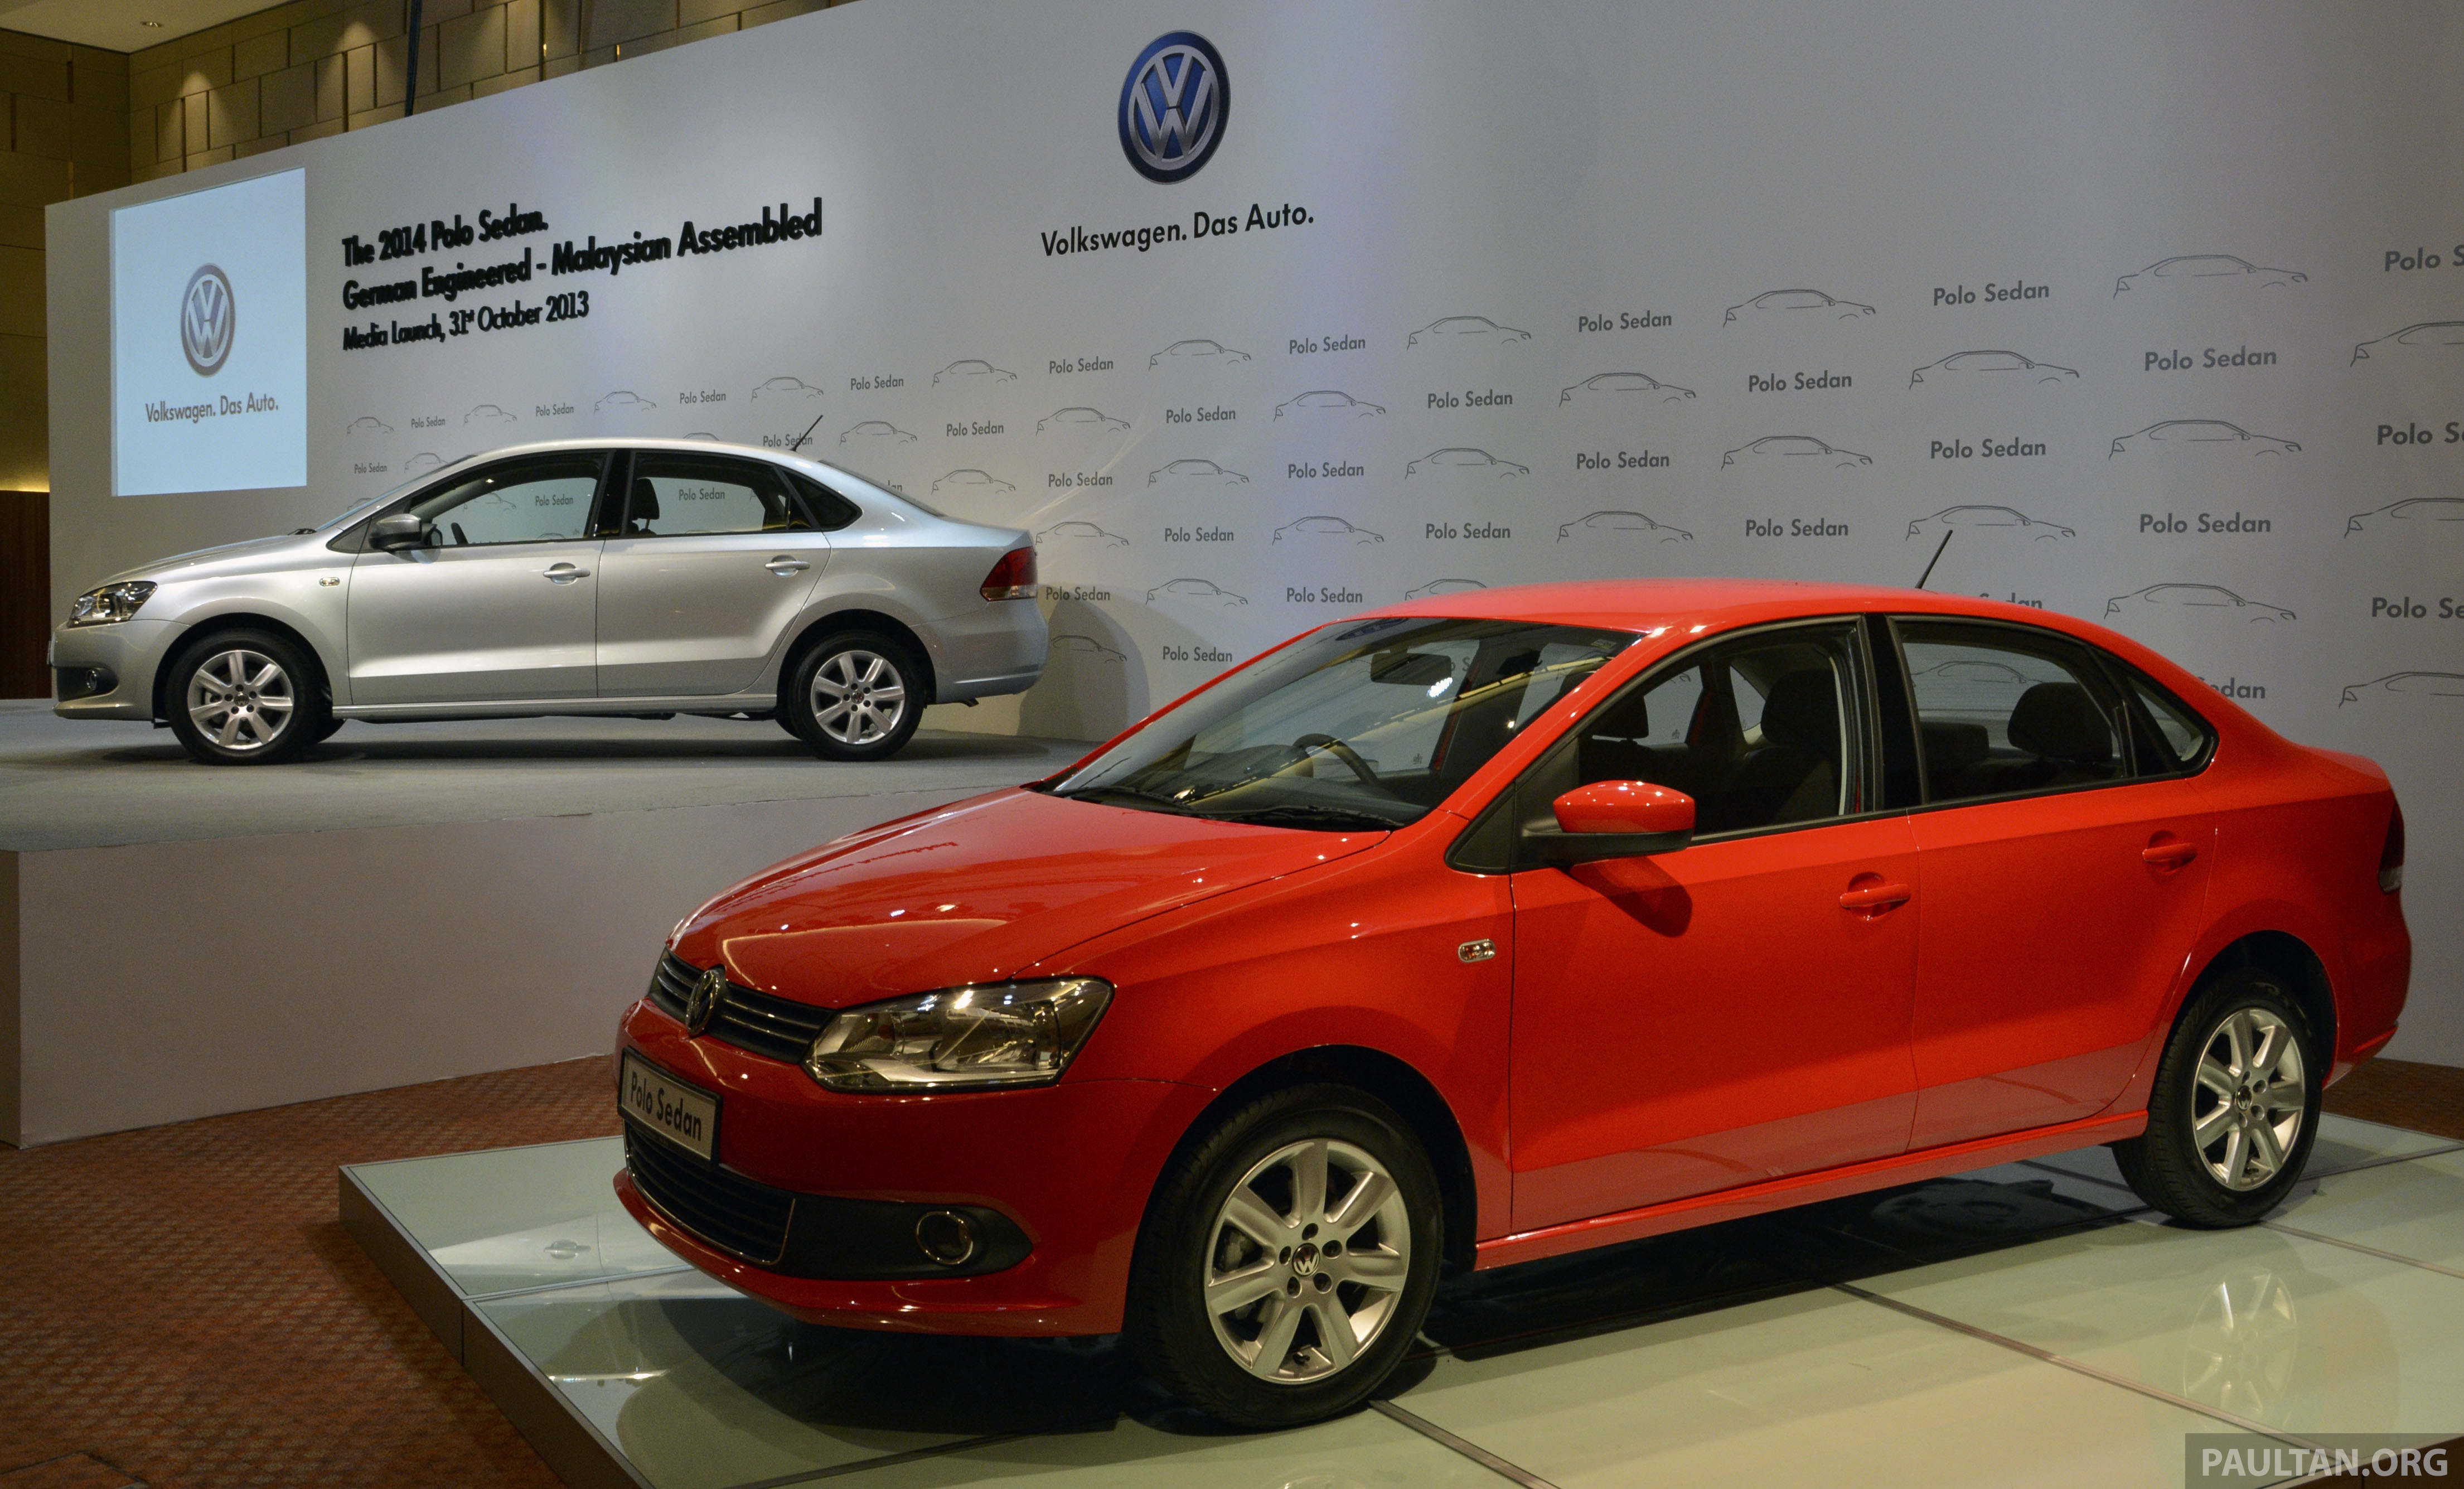 malaysia to export vw jetta and polo sedan in 2015. Black Bedroom Furniture Sets. Home Design Ideas